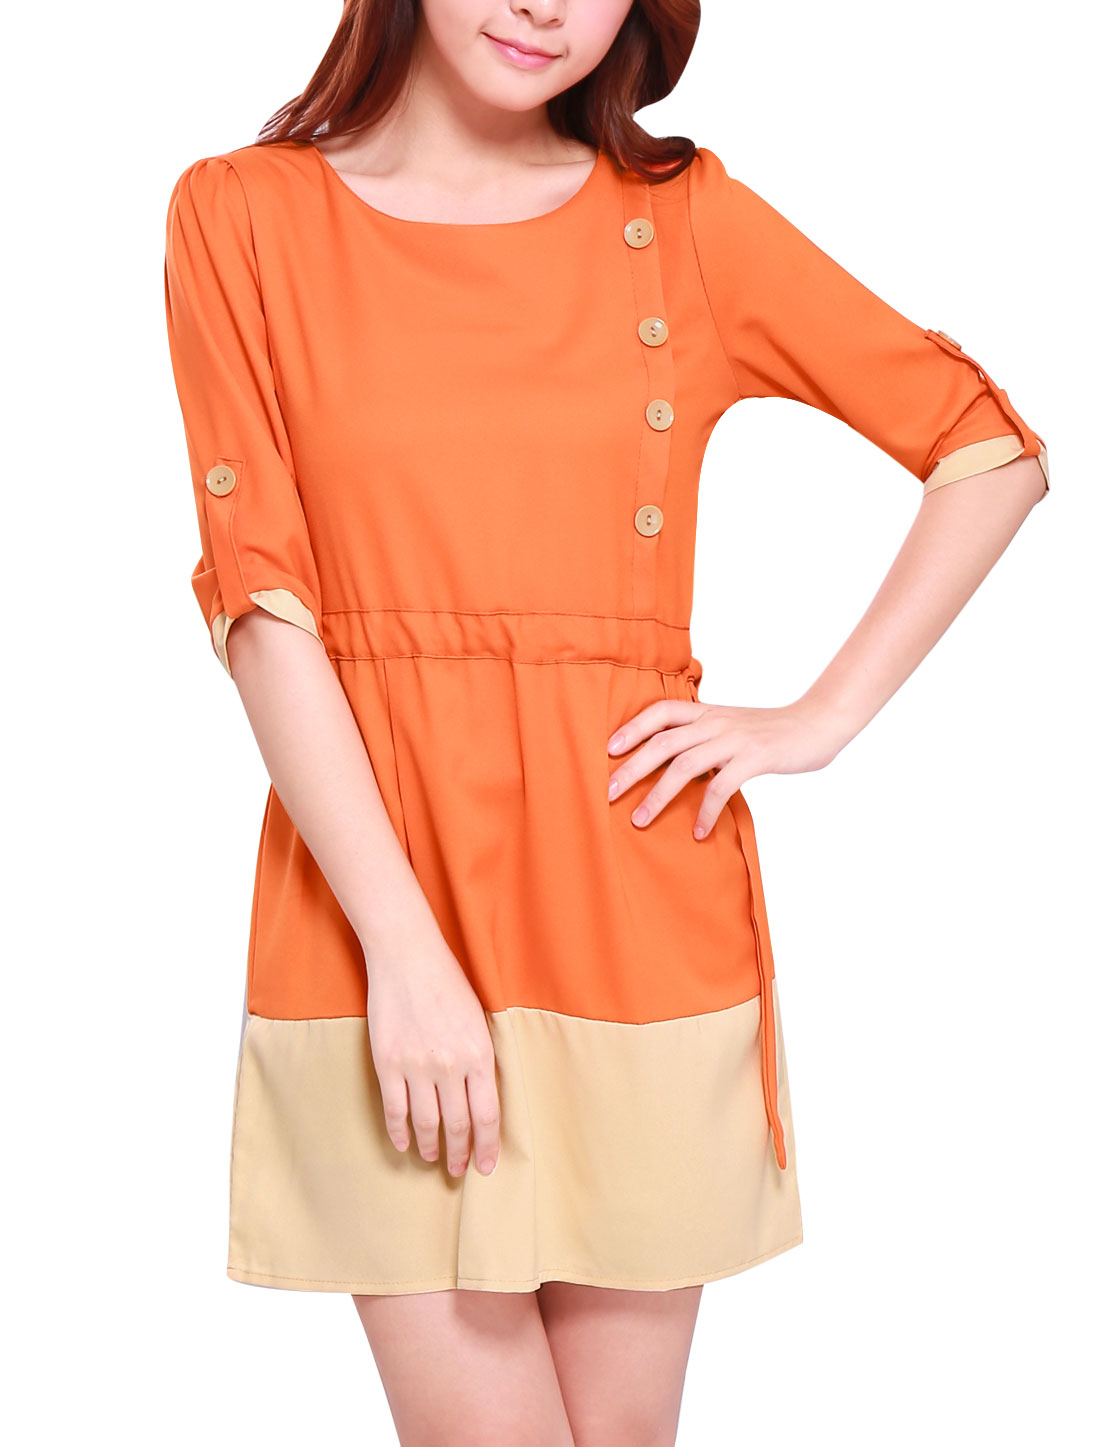 Women Fashion Roll Up Cuffs Drawstring Waist A Line Dress Orange S